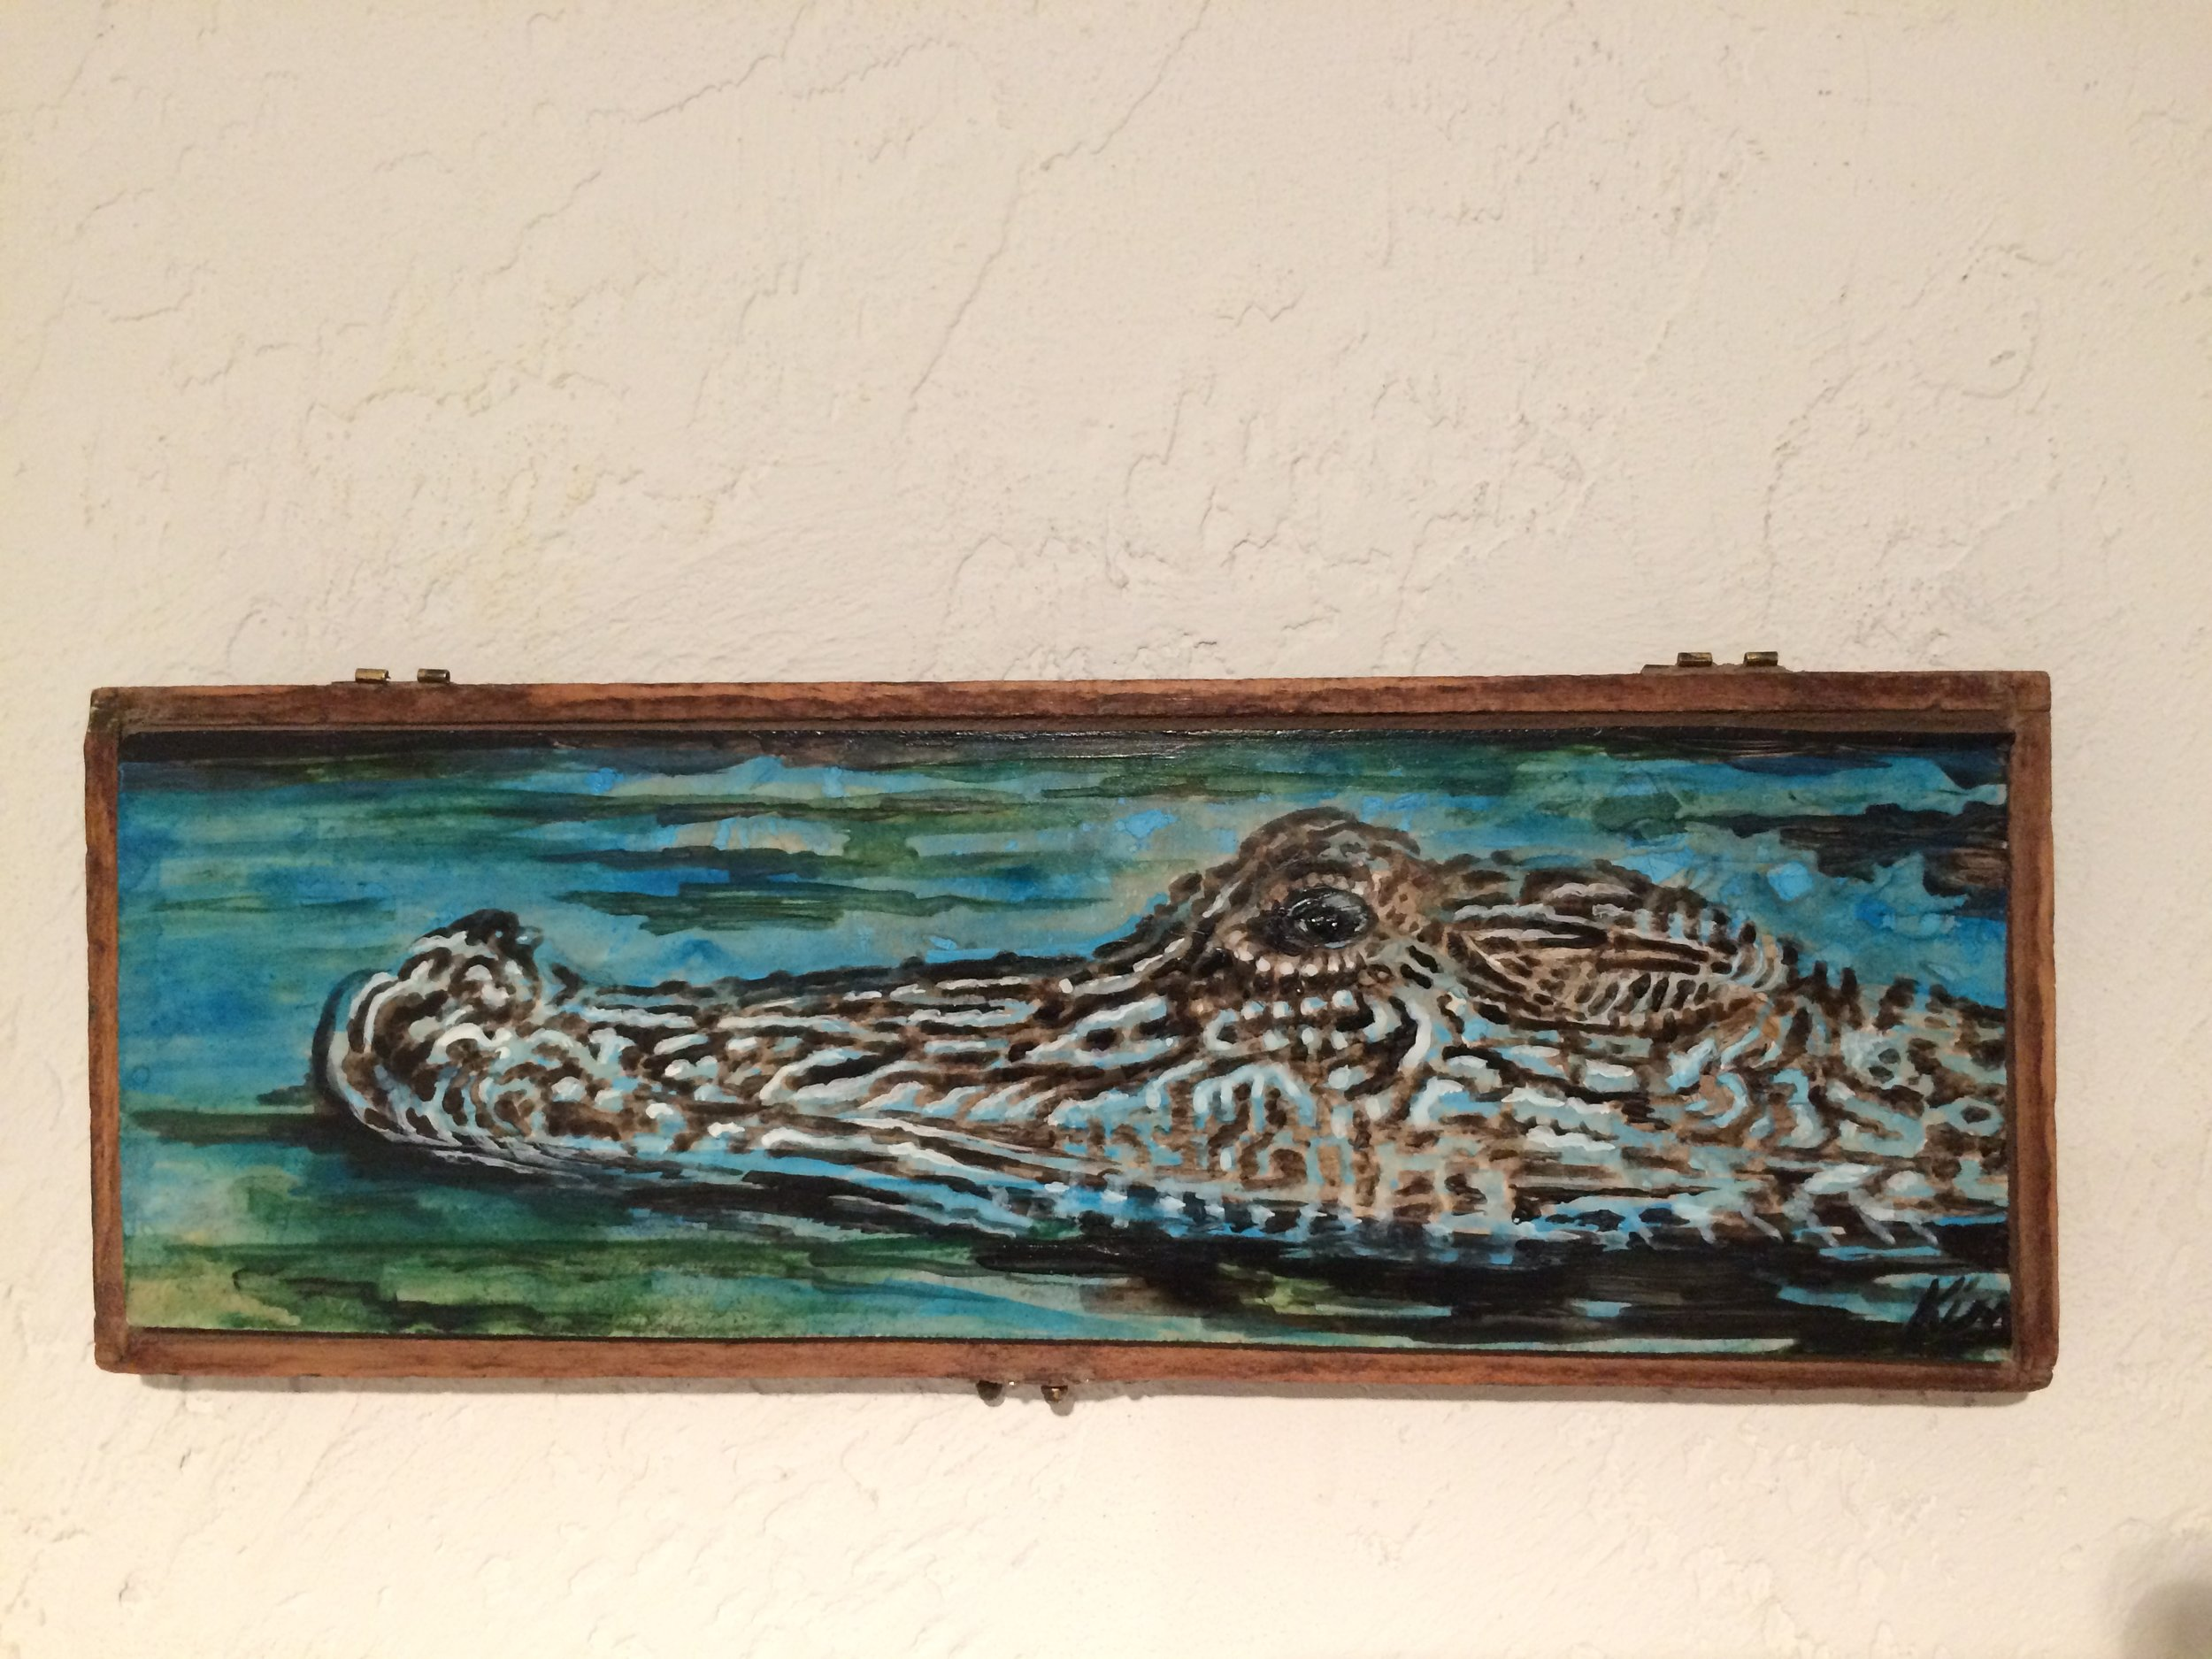 "Alligator on Water, in vintage wooden box, 12"" x 4 1/2"" SOLD"